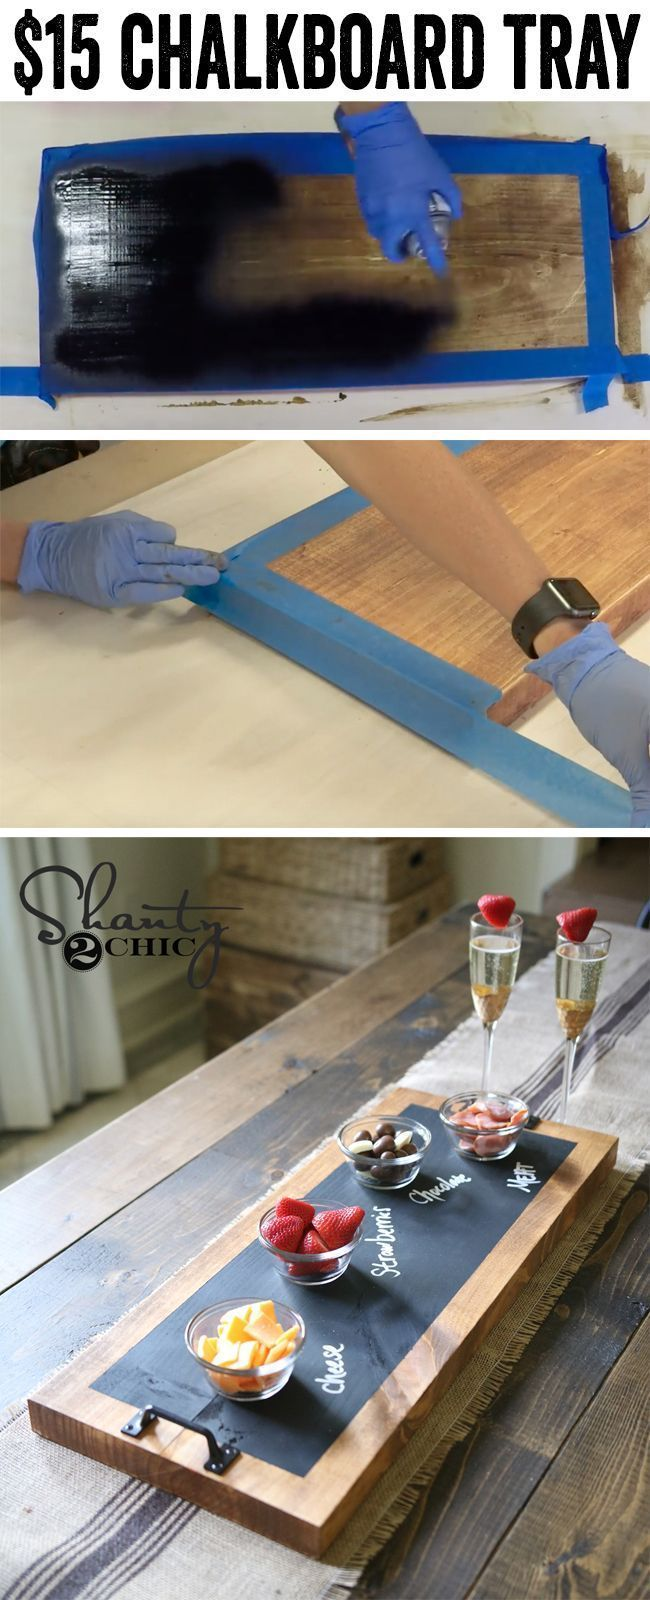 Diy Chalkboard Serving Tray Tutorial And Youtube Video Madera